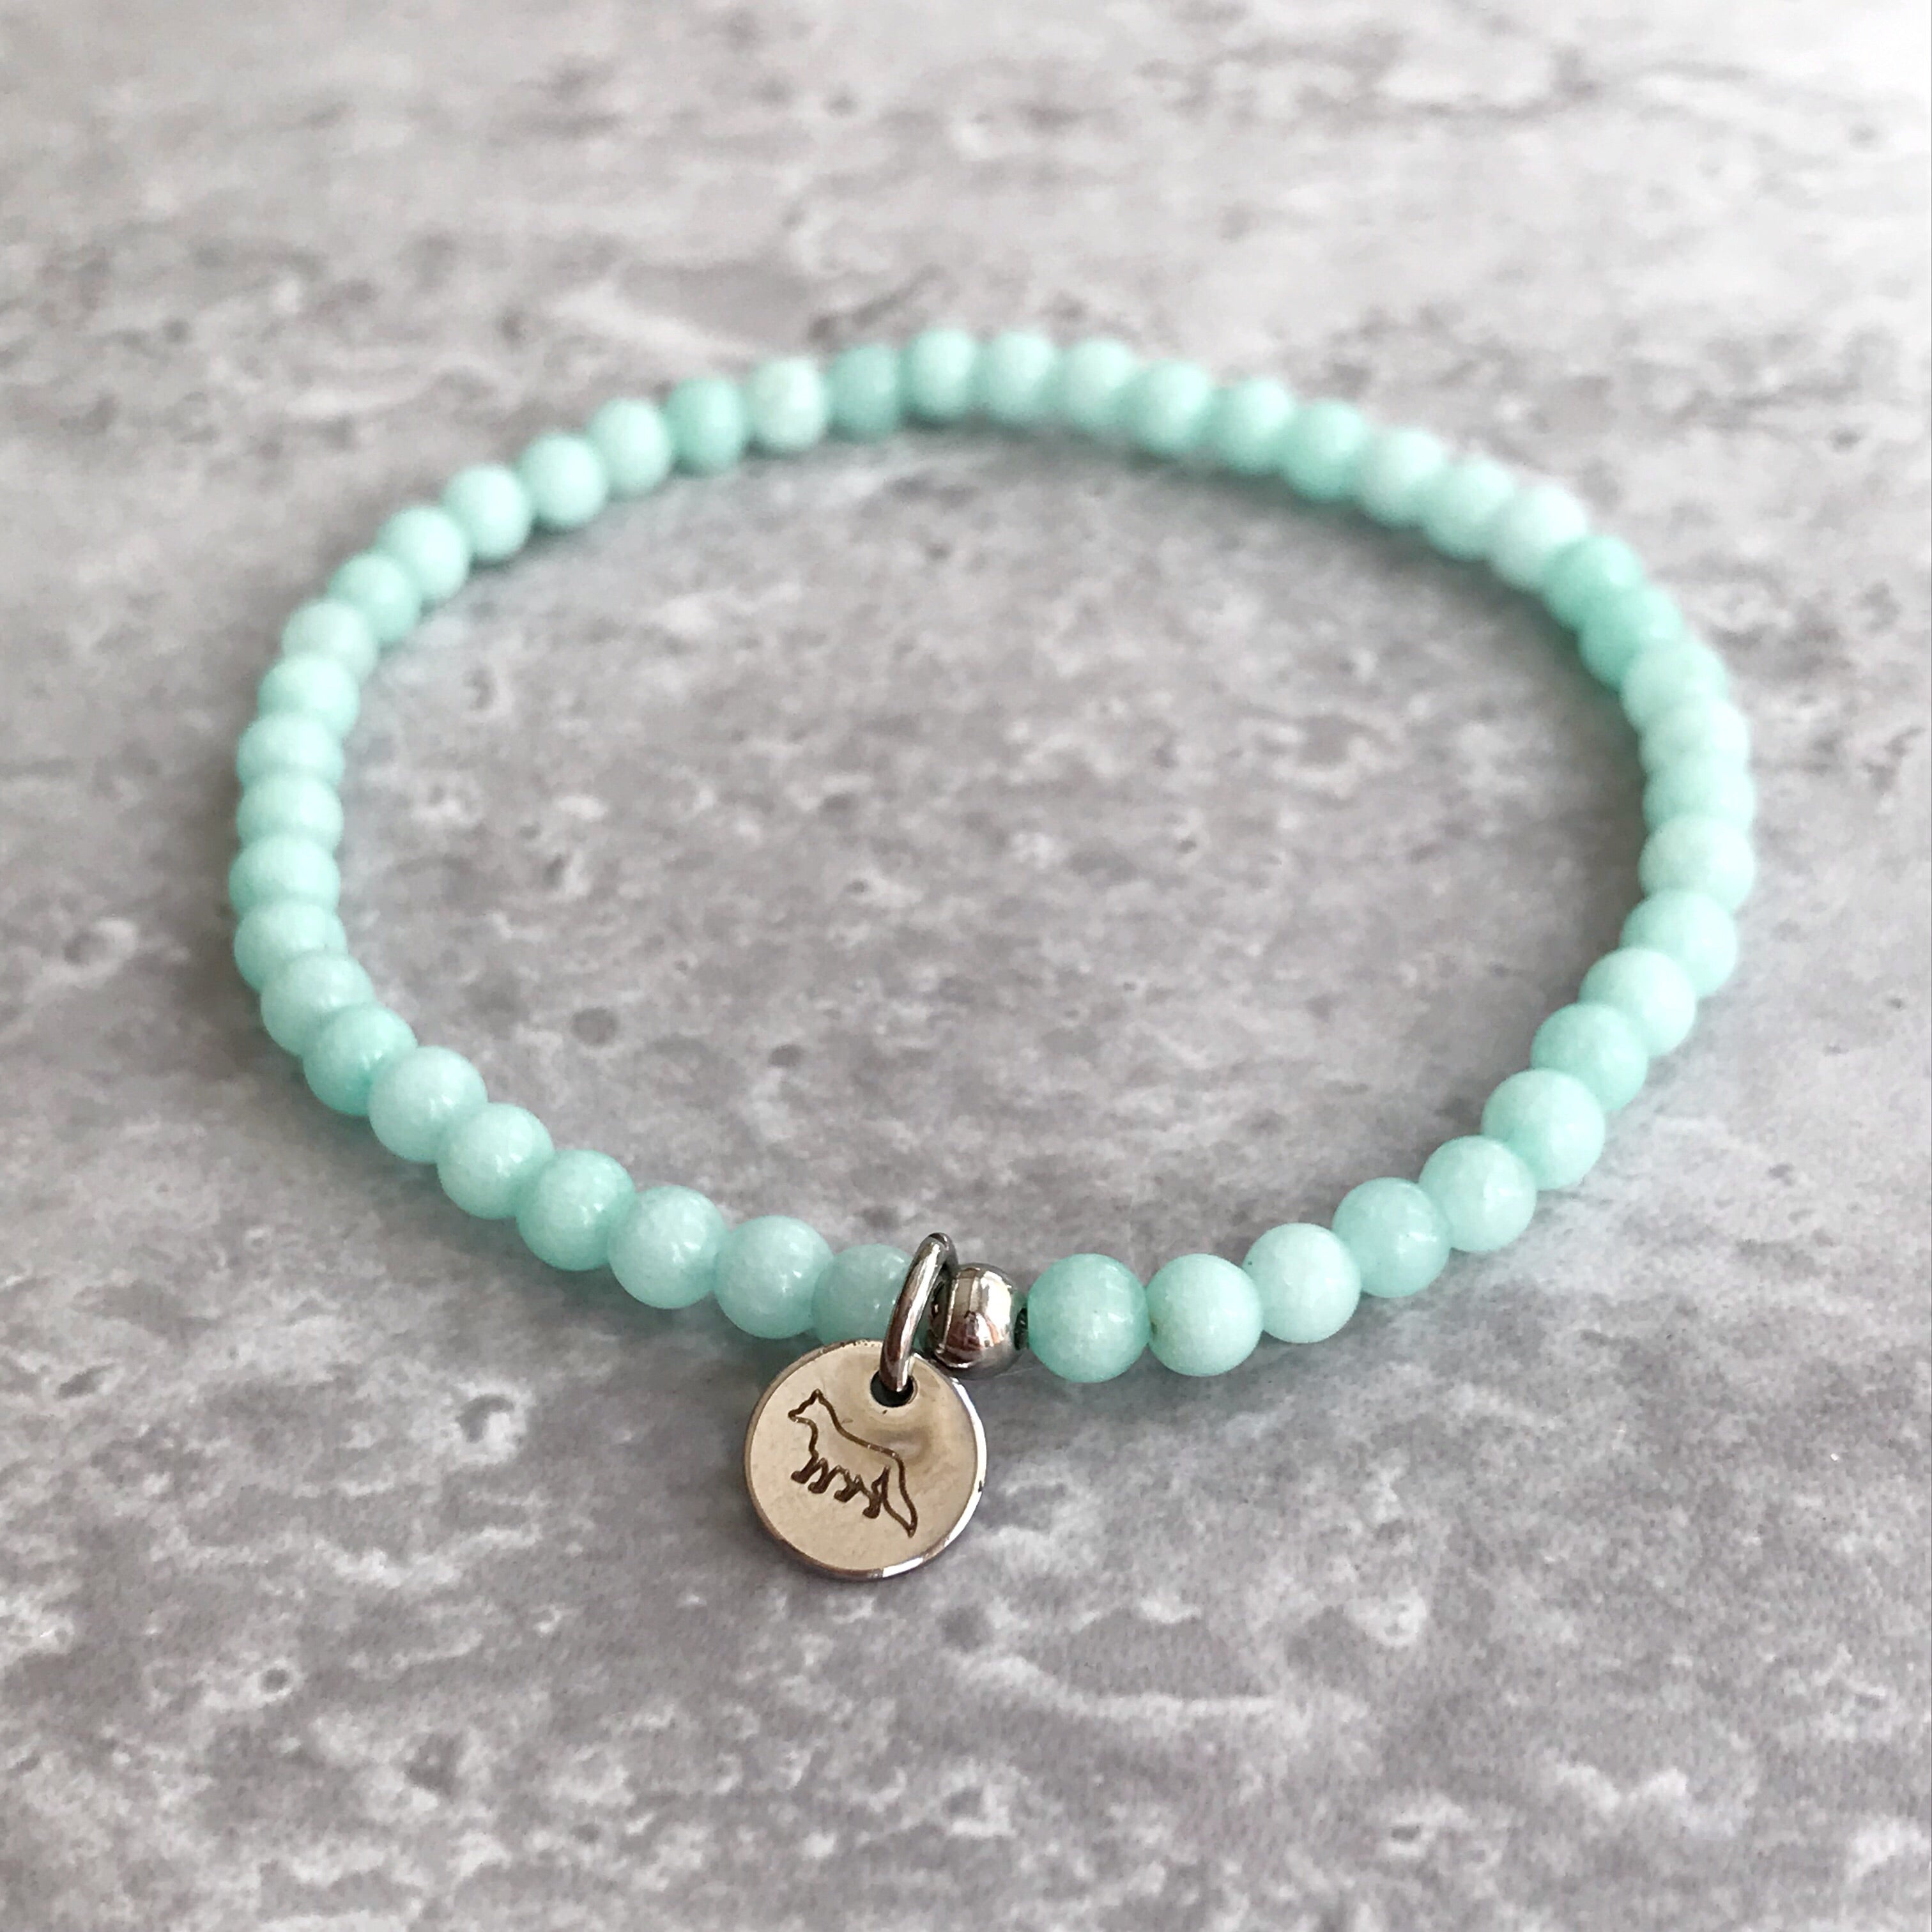 Blue Amazonite Bracelet - 4mm